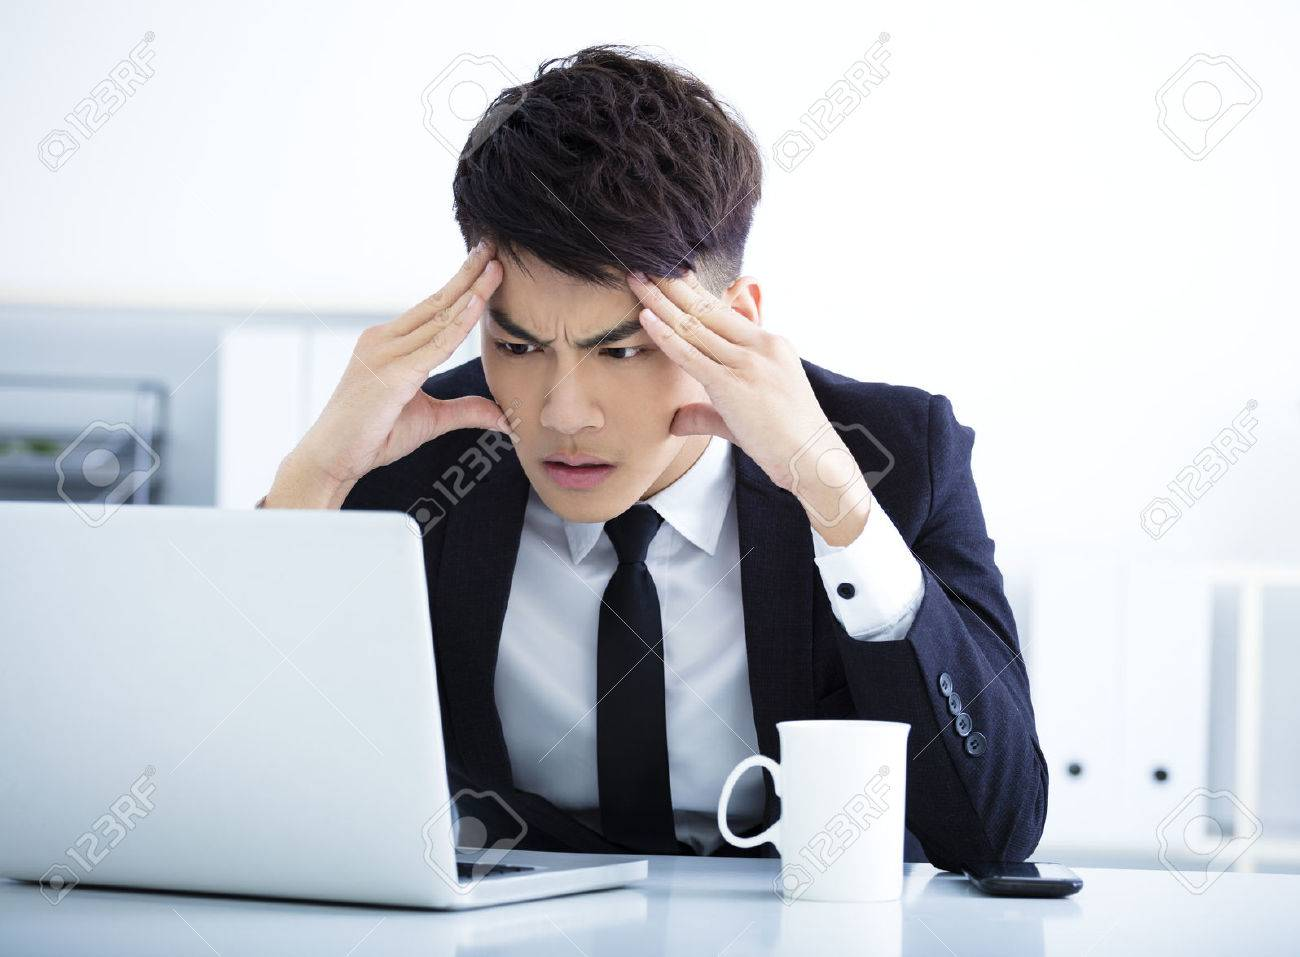 Businessman having stress in the office - 52000876